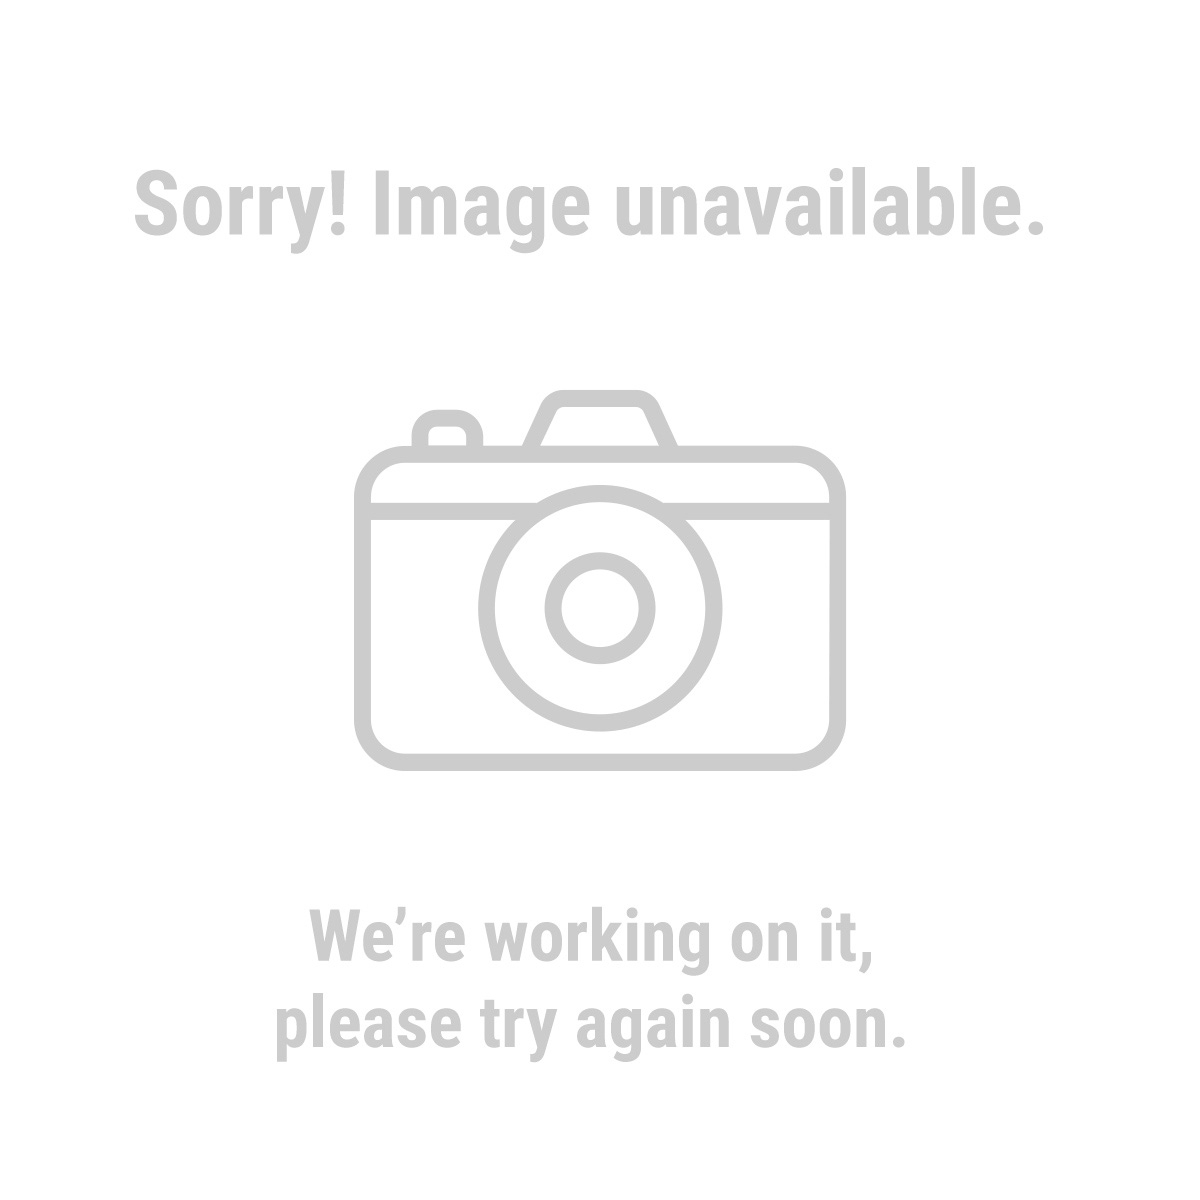 Admiral® 62736 7-1/4 in. 48T Metal Cutting Circular Saw Blade